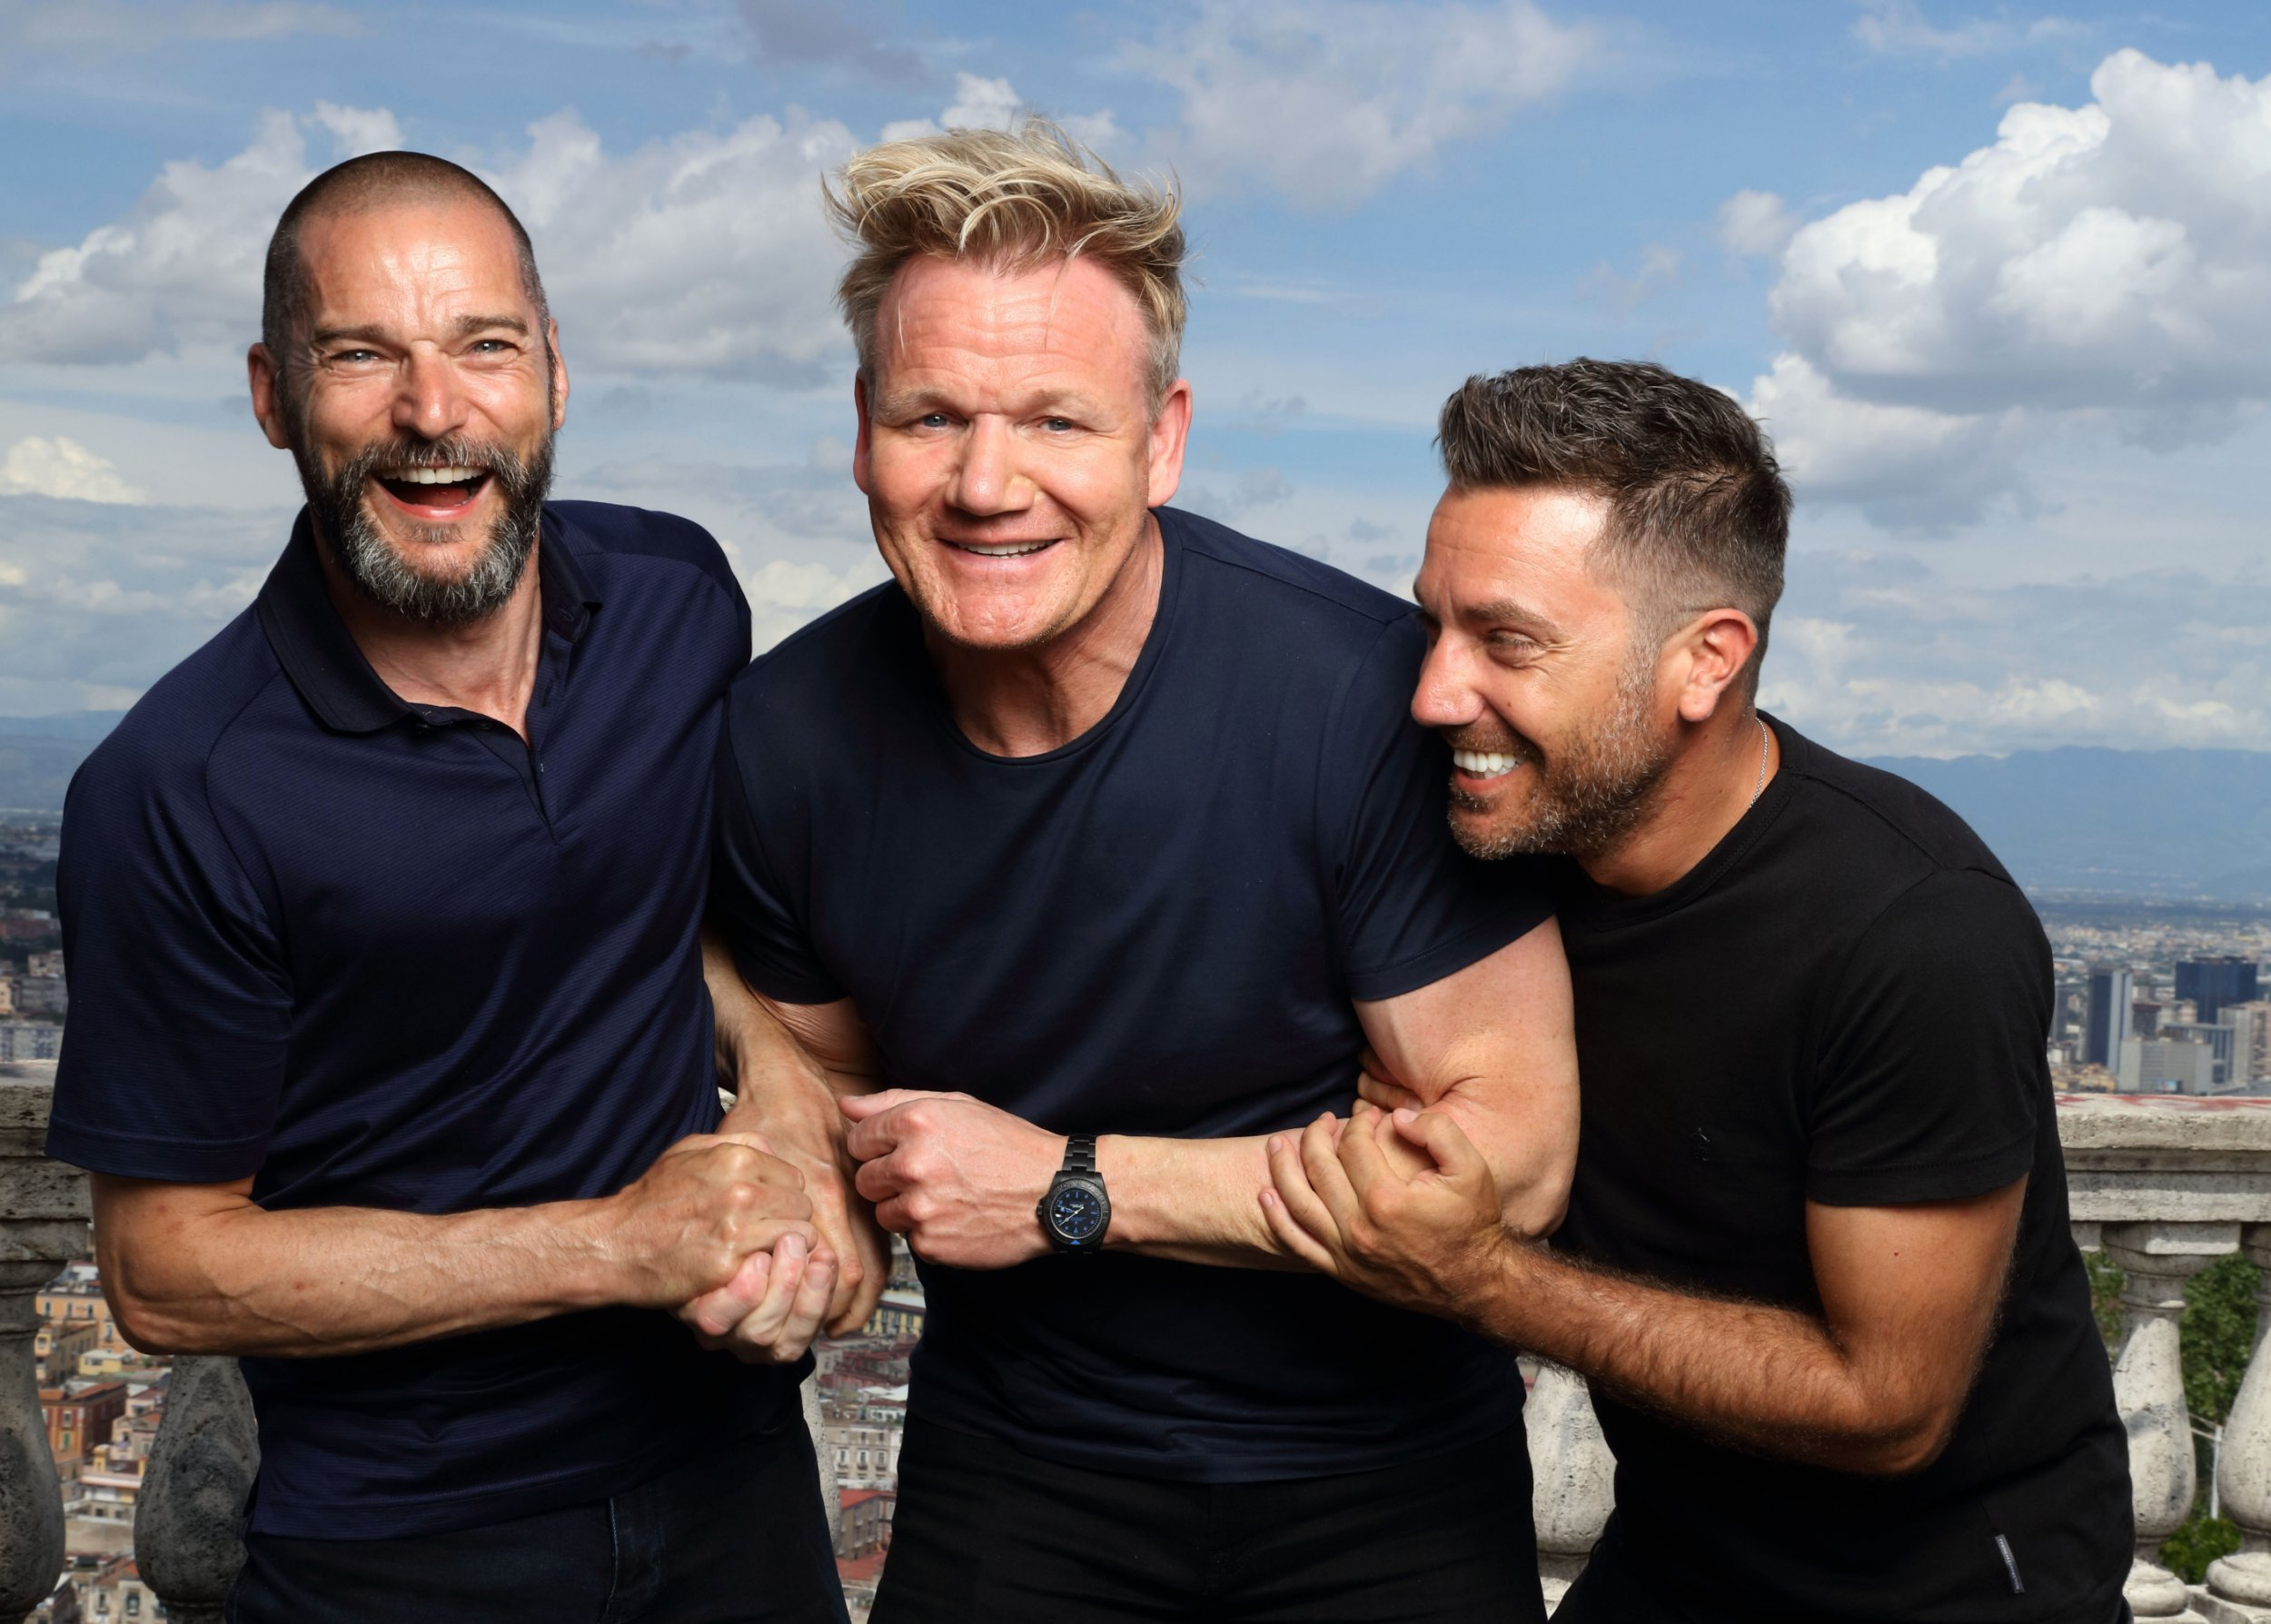 Gordon Ramsay used to wake up Gino D'Acampo in the mornings by whacking his foot with his penis